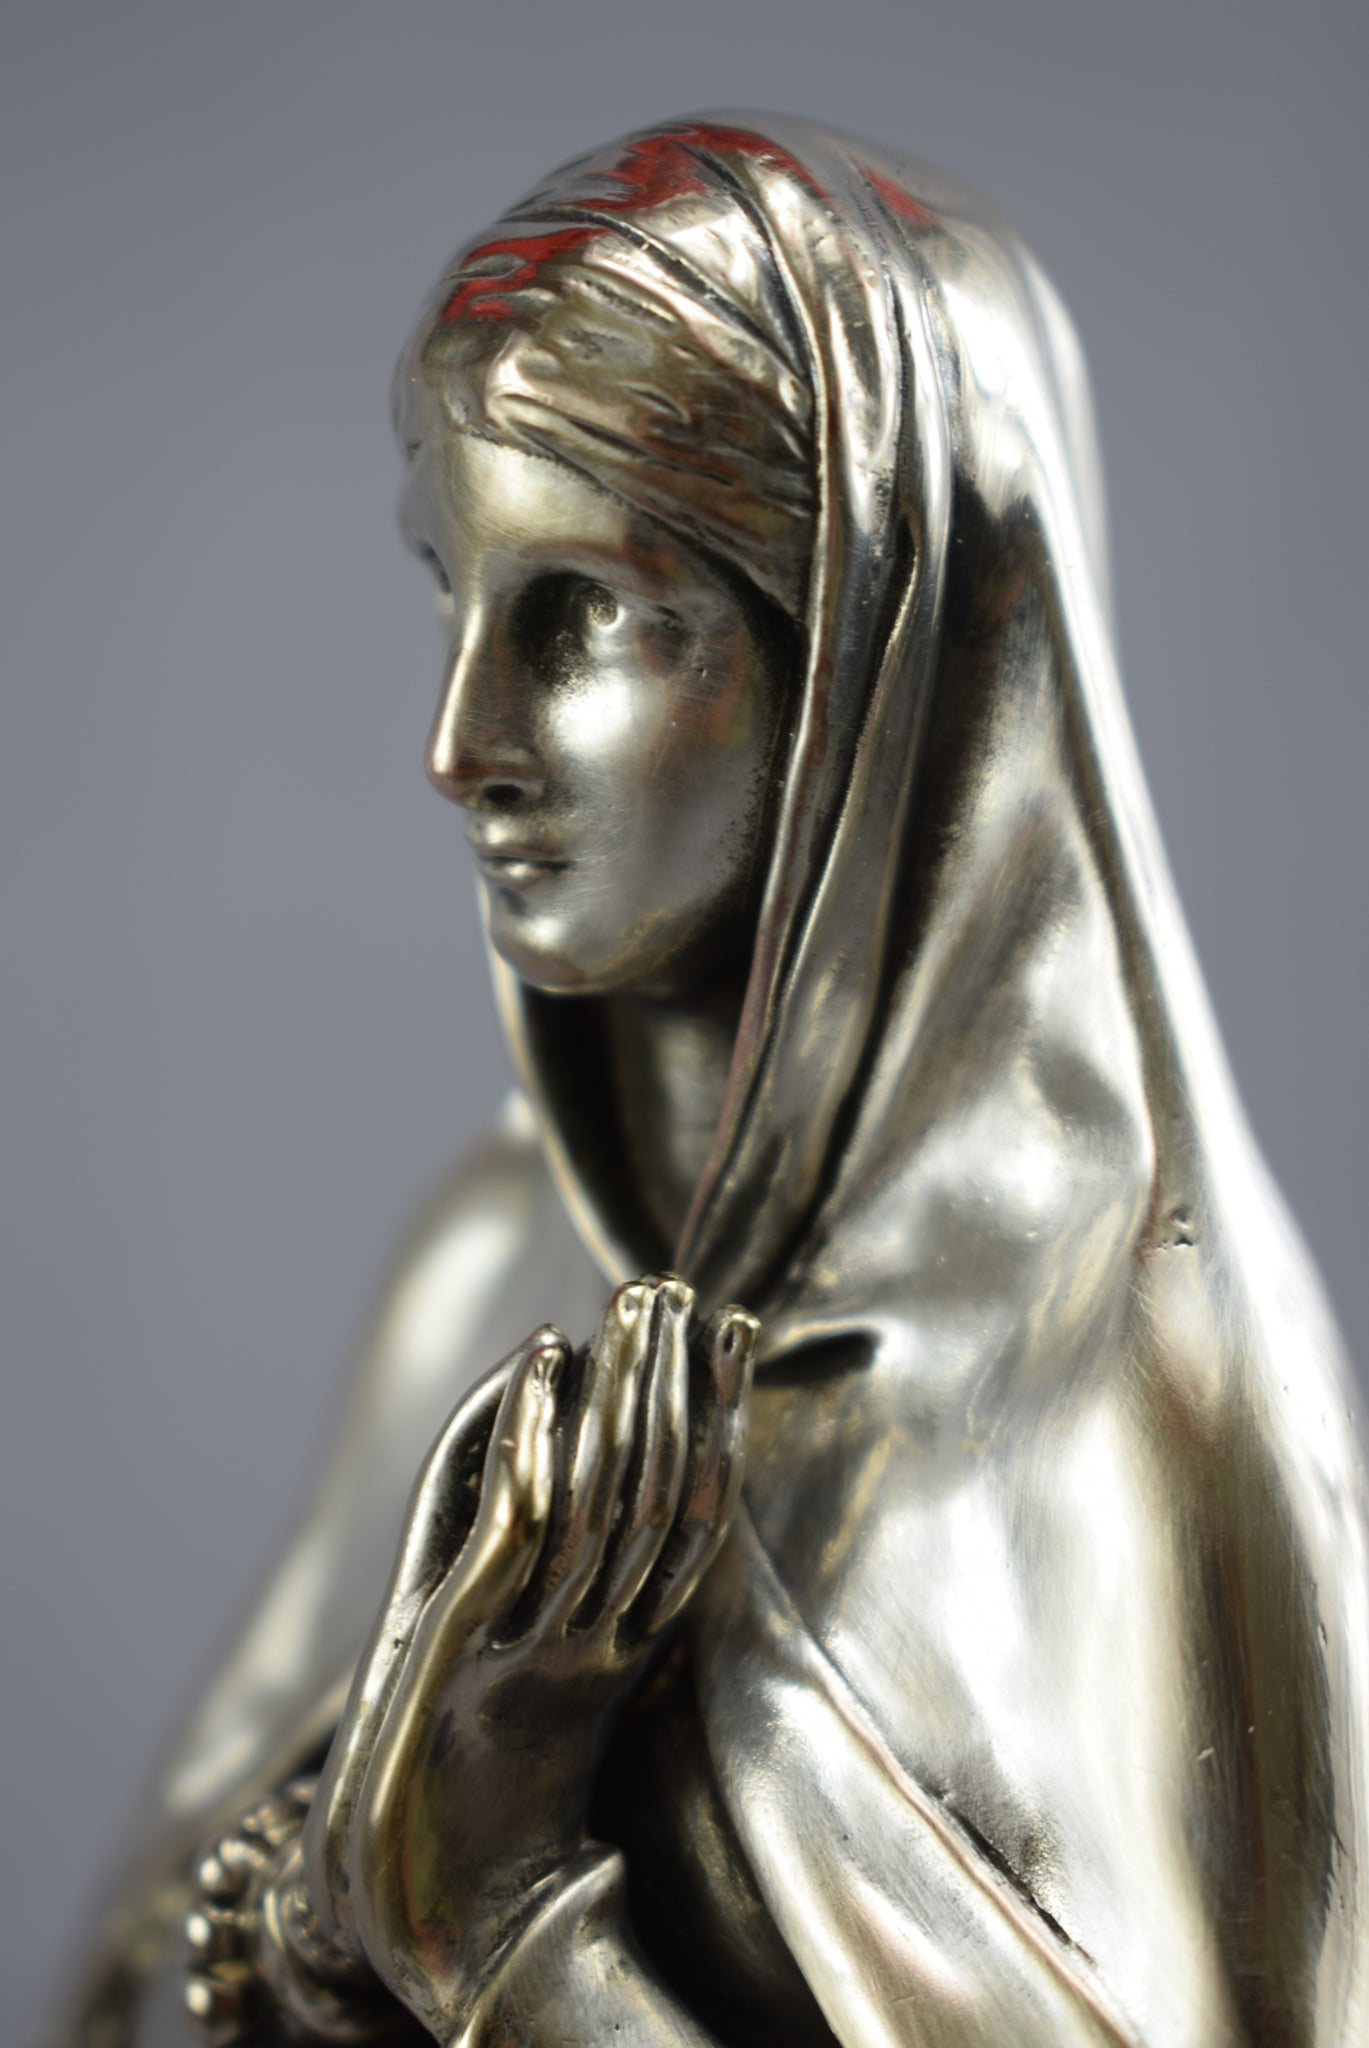 Christofle & Cie Virgin Statue - Charmantiques